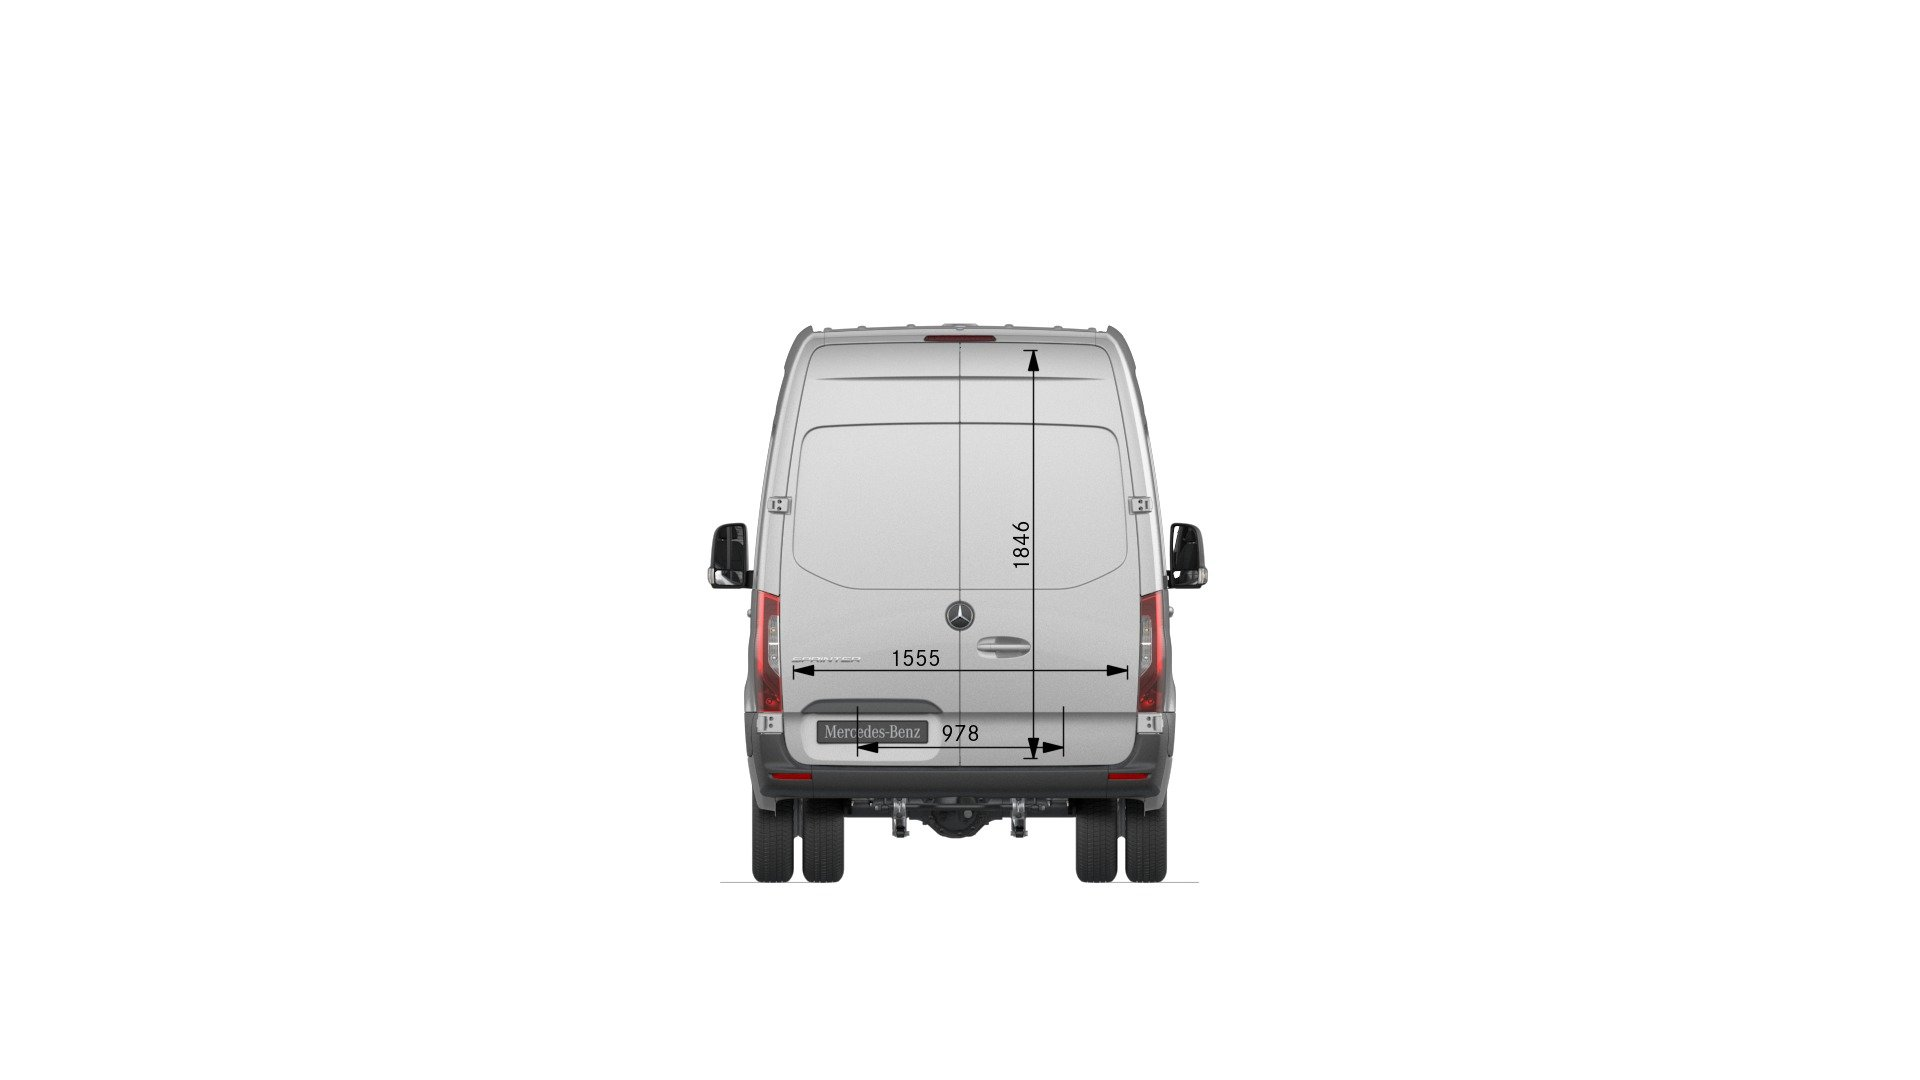 Van drawings-Rear view